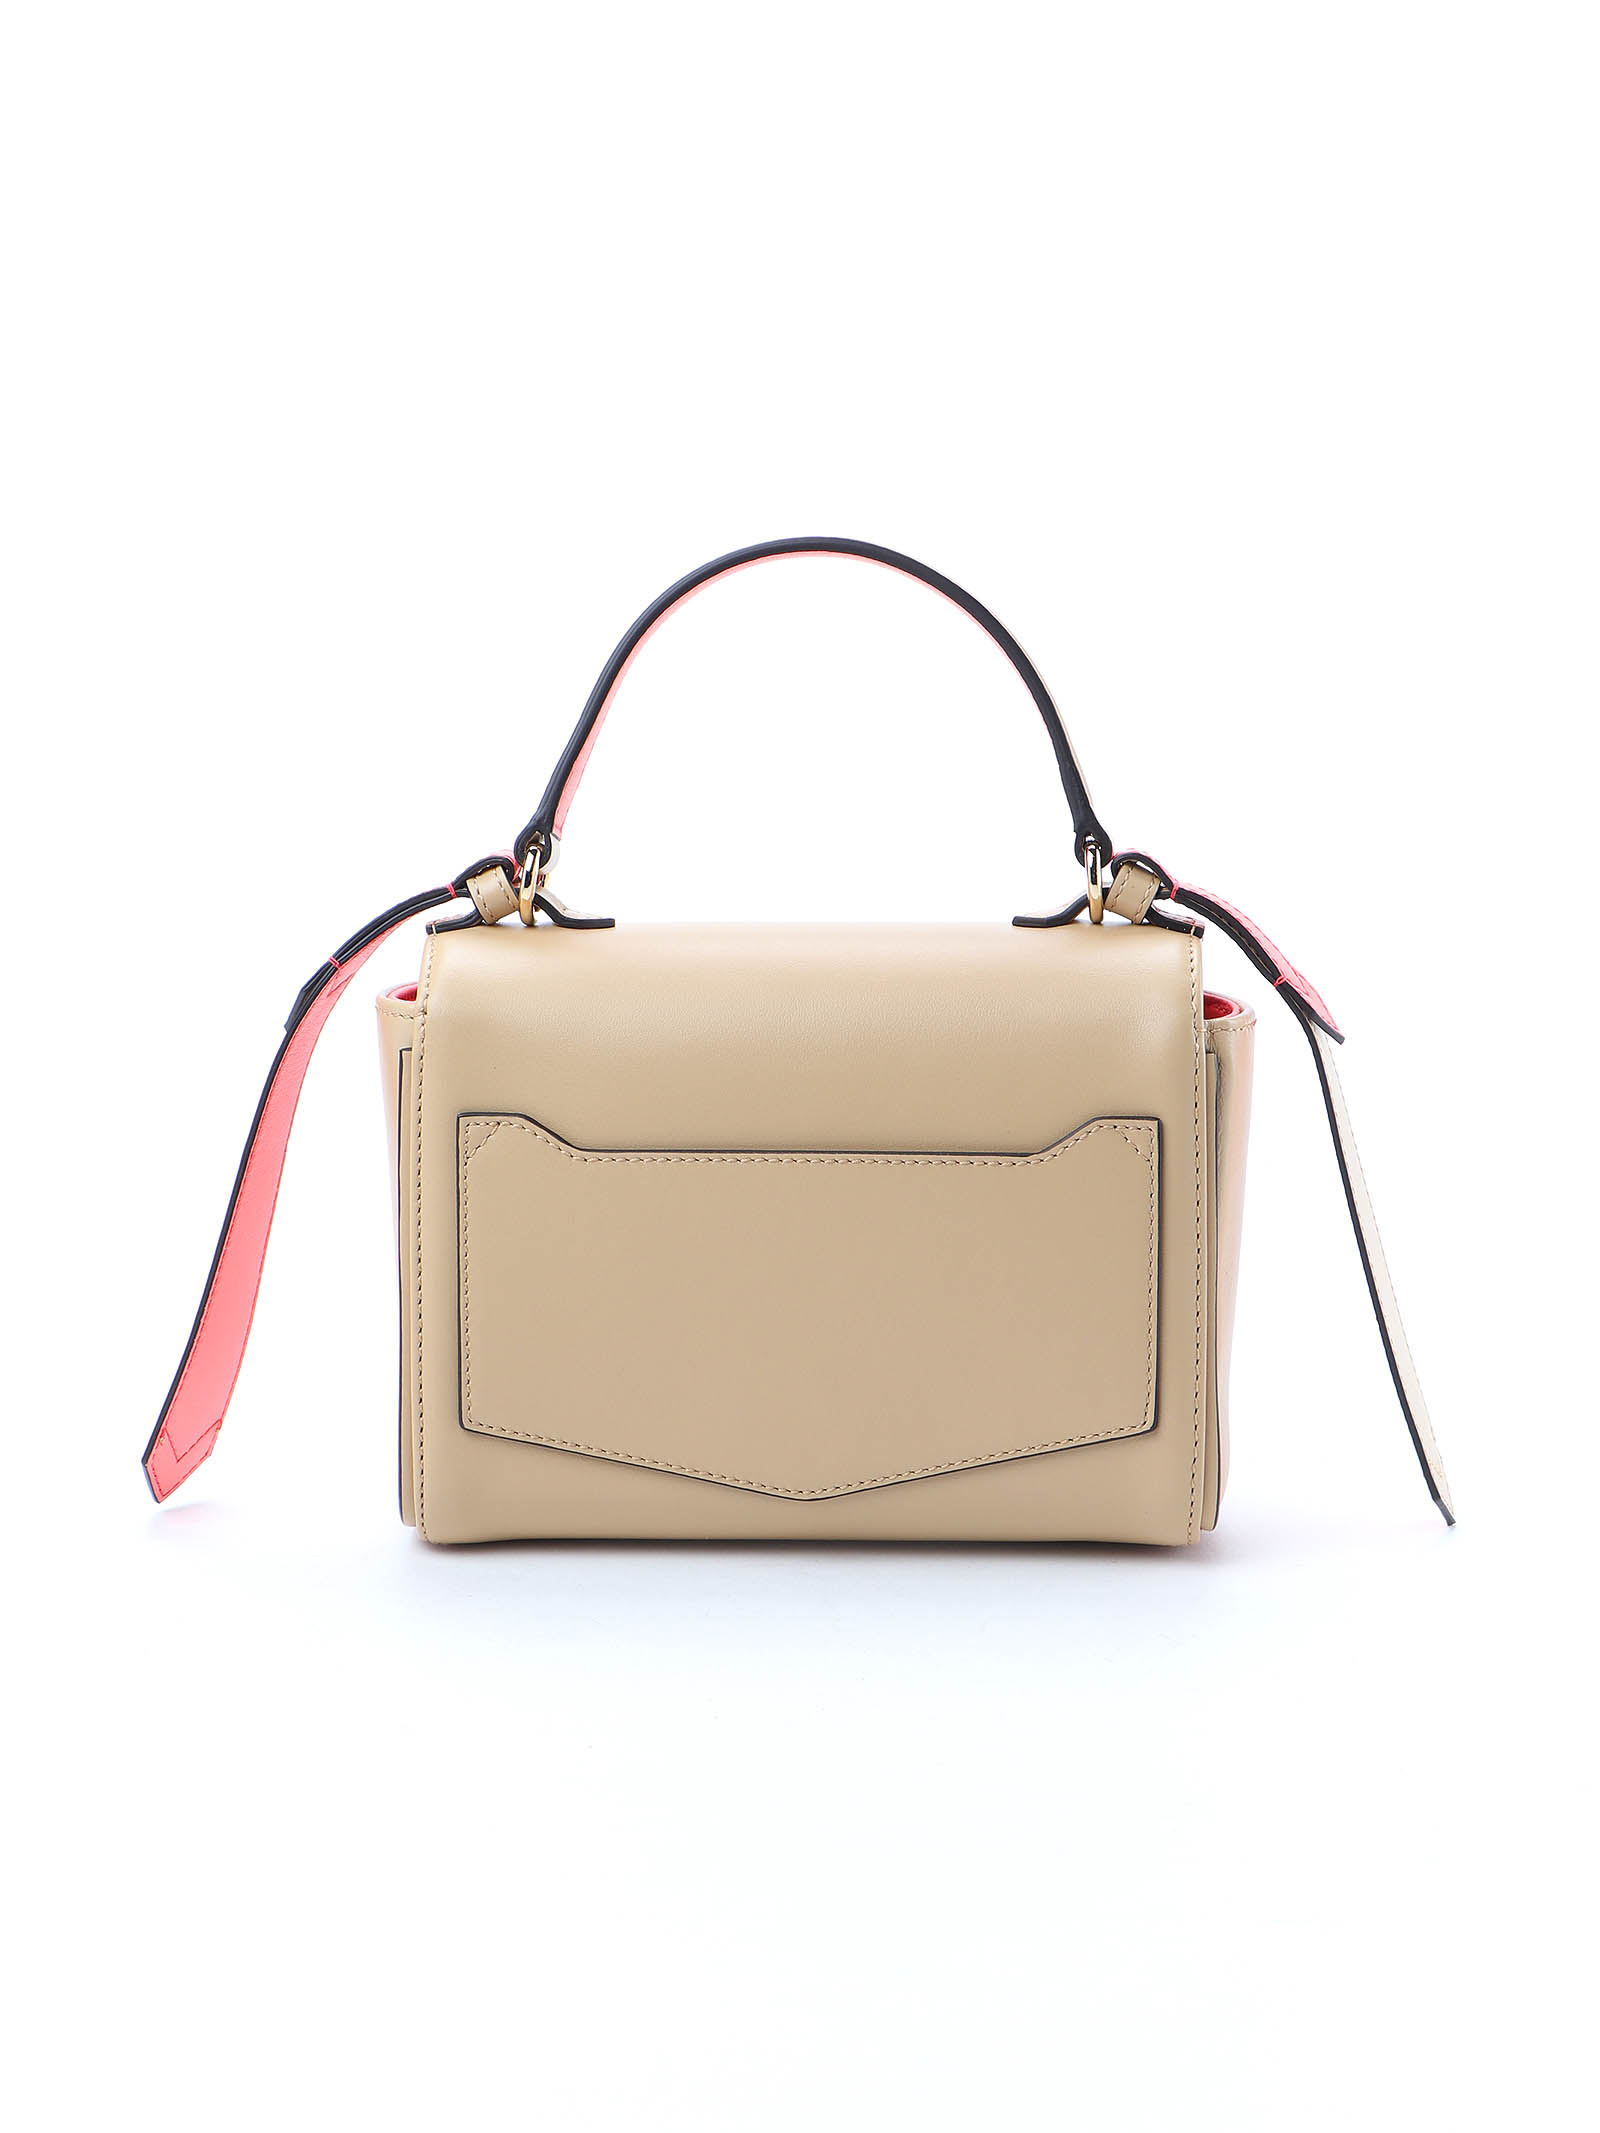 Picture of Givenchy | Eden Mini Bag